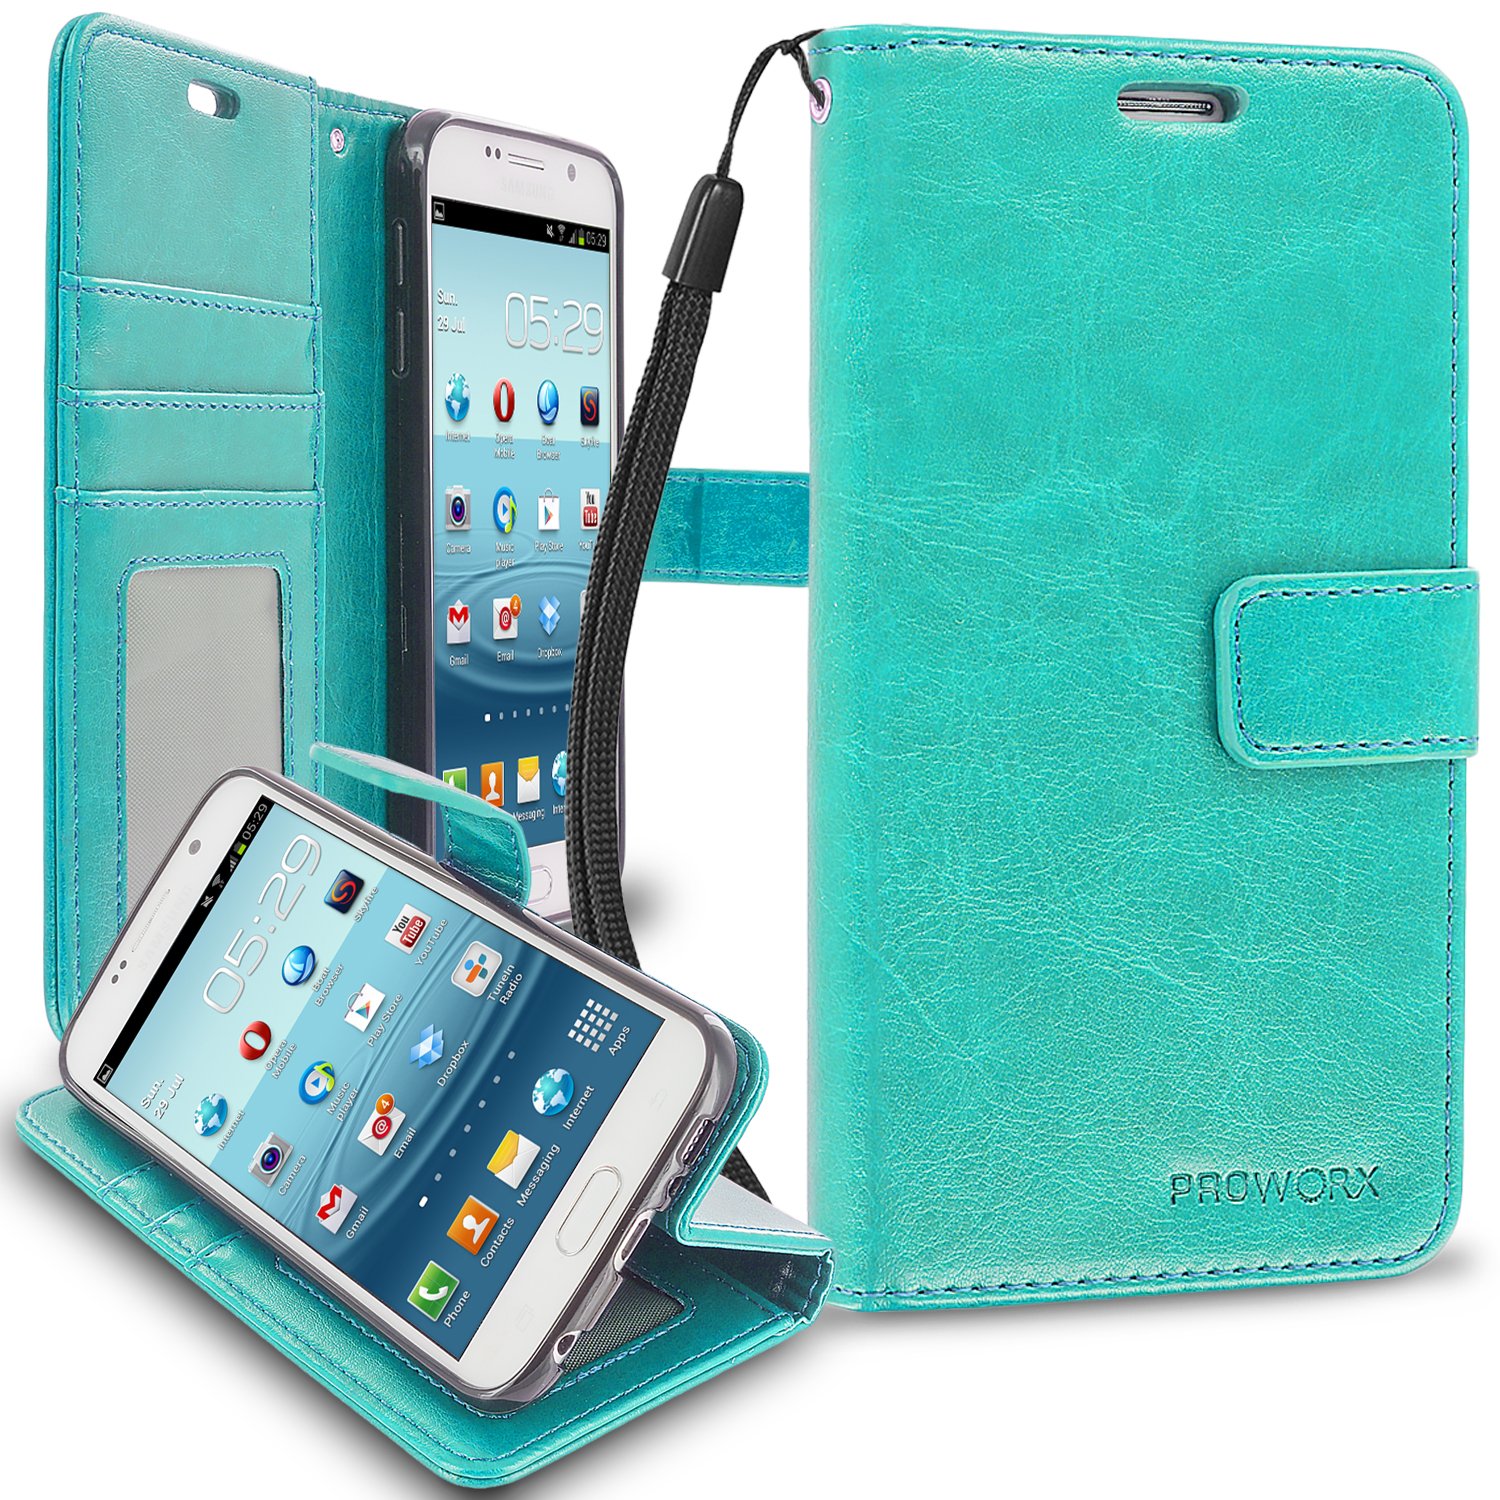 Samsung Galaxy S6 Mint Green ProWorx Wallet Case Luxury PU Leather Case Cover With Card Slots & Stand